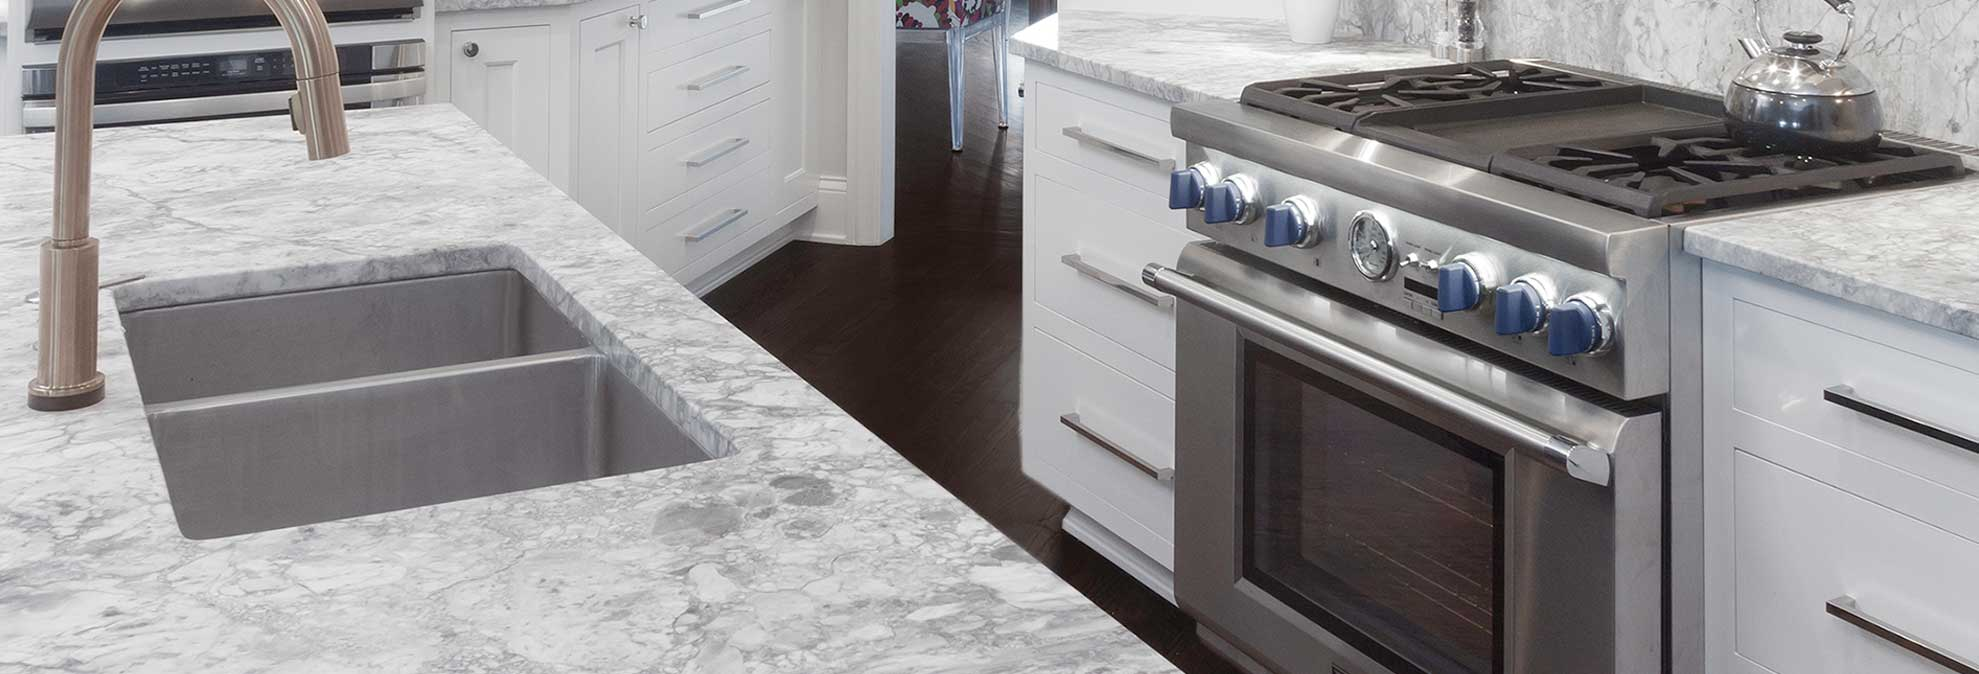 kitchen stoves macy's sets best range buying guide consumer reports